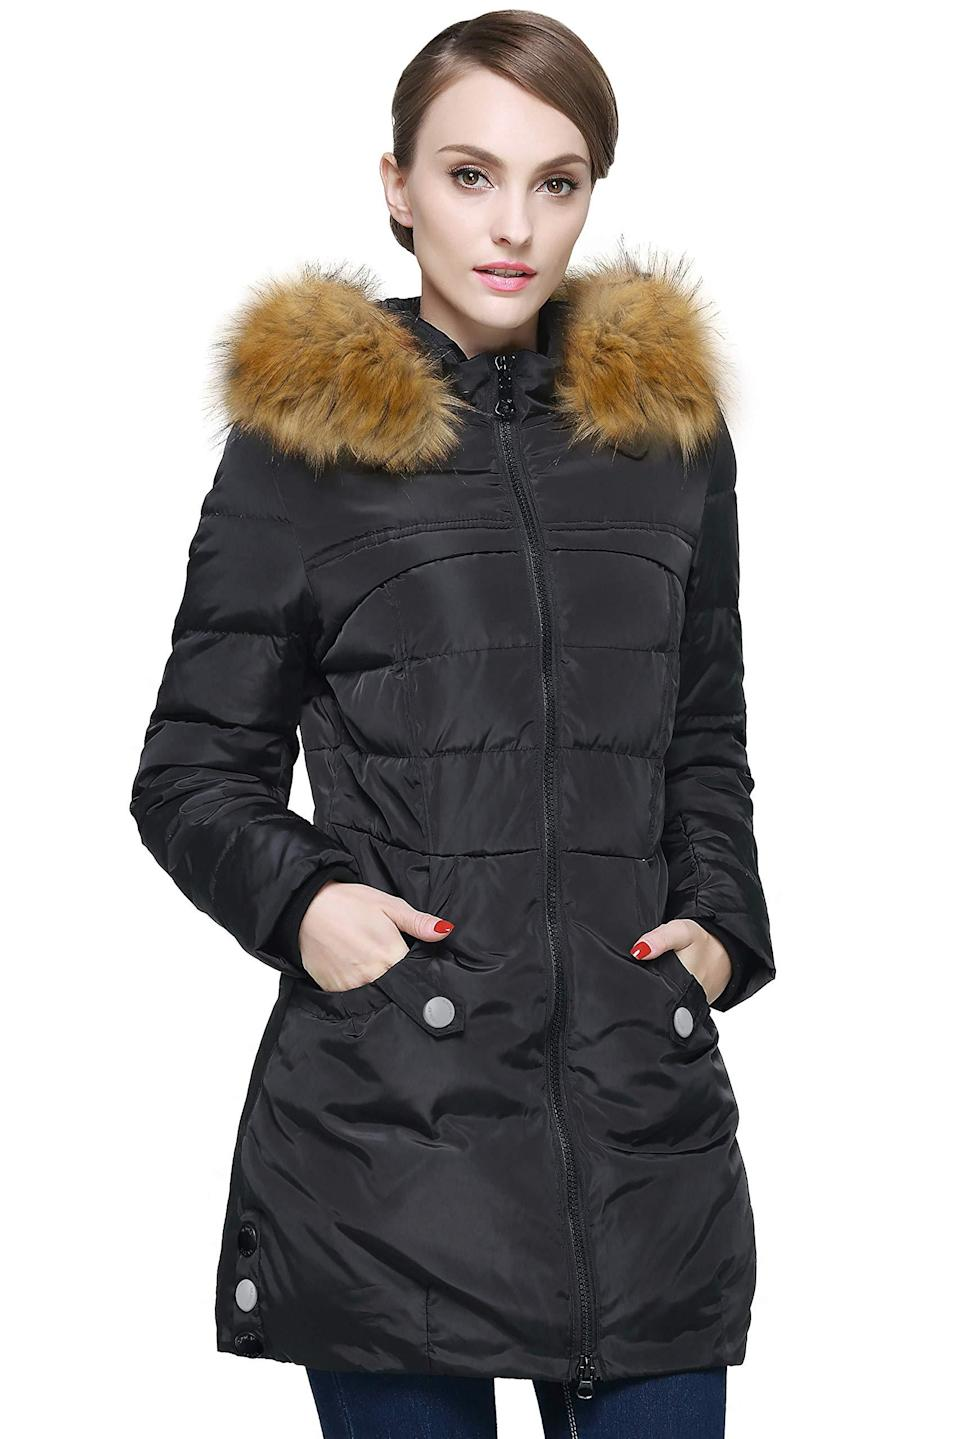 """<h2>Orolay Down Jacket With Faux-Fur Trim</h2><br>It's the infamous Amazon coat that first caught trend-fire on cool-moms in the streets of Brooklyn and then quickly took over the online-shopping scene as a top-bought, affordable, and very stylish-looking hidden outerwear gem — and it's currently 20% off for Prime Day. """"I ordered this on a Lightning Deal for around $60, and I cannot believe the quality! Super warm (I tested it this morning in 20 degrees, 20 mph winds, and snow in Michigan), and flattering fit. Zipper seems very substantial and strong, the hood is a good size and the fur is not cheap looking at all. Nice stretchy ribbed fabric at wrists help seal out the cold, too. Great winter coat especially for the price!"""" one cozy-chic customer attests.<br><br><strong>4.3 out of 5 stars and 1,245 reviews</strong><br><br><strong>Orolay</strong> Down Jacket with Faux Fur Trim Hood, $, available at <a href=""""https://amzn.to/33Y8gJb"""" rel=""""nofollow noopener"""" target=""""_blank"""" data-ylk=""""slk:Amazon"""" class=""""link rapid-noclick-resp"""">Amazon</a>"""